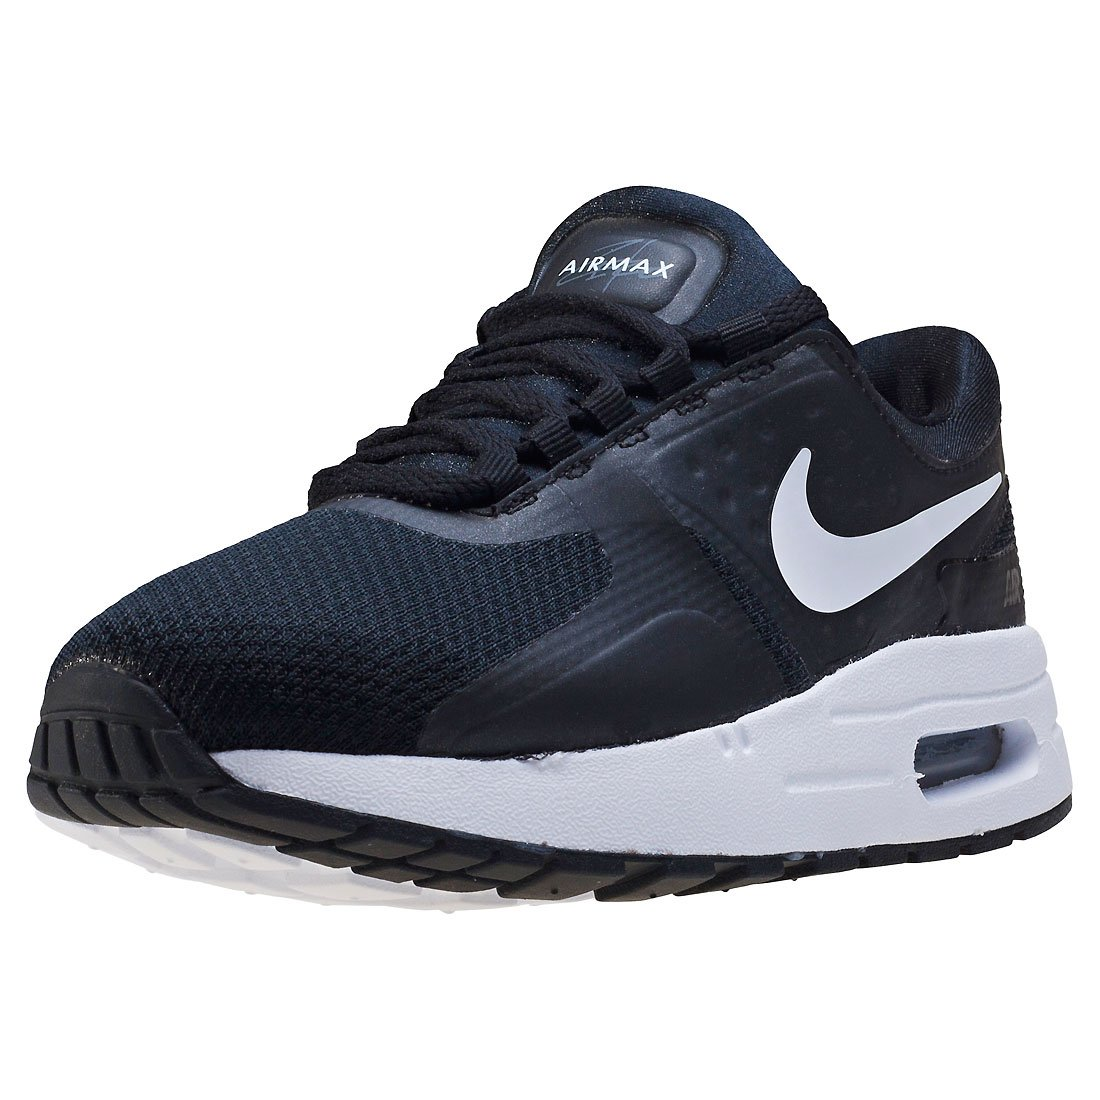 wholesale dealer 1923e a5b3c Nike Kids Air Max Zero Essential Black White Dark Grey 881226-002 (Size  2Y)   Amazon.ca  Shoes   Handbags